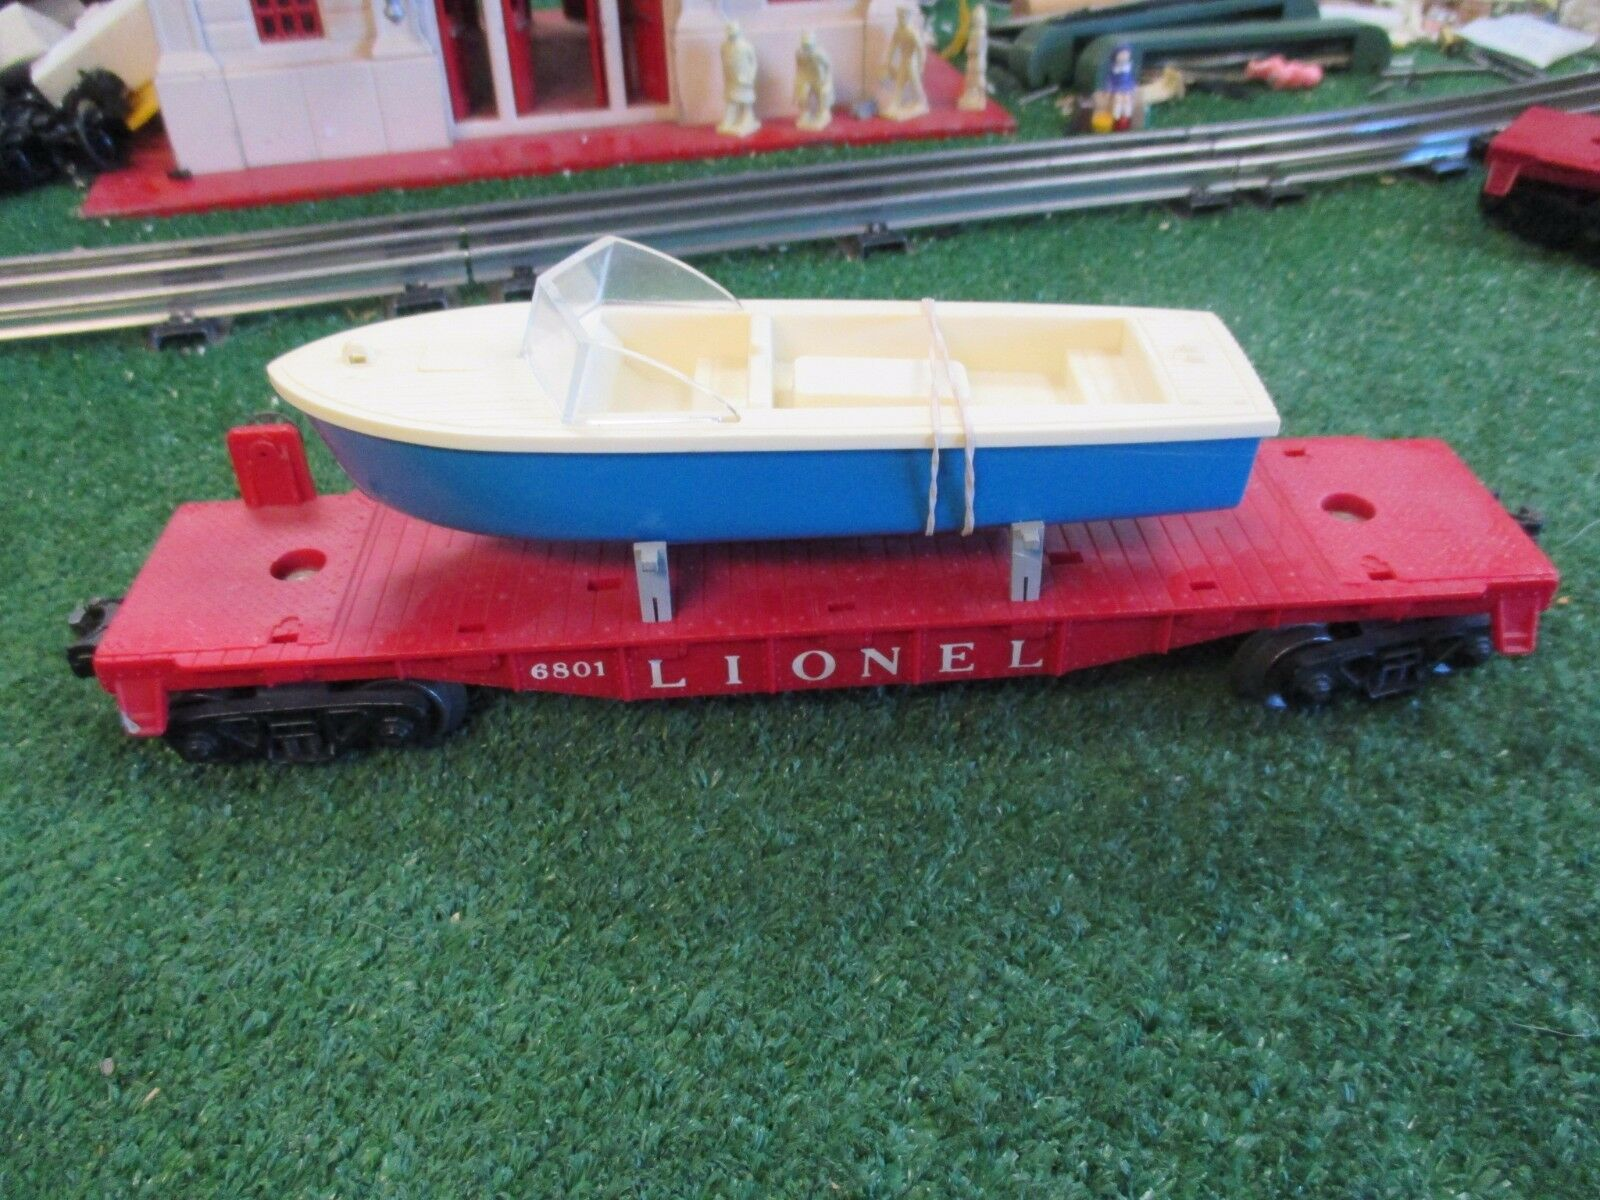 LIONEL POST WAR 6801-75 FLAT  CAR WITH BOAT [REPO BOAT]  EXC COND  1958-60